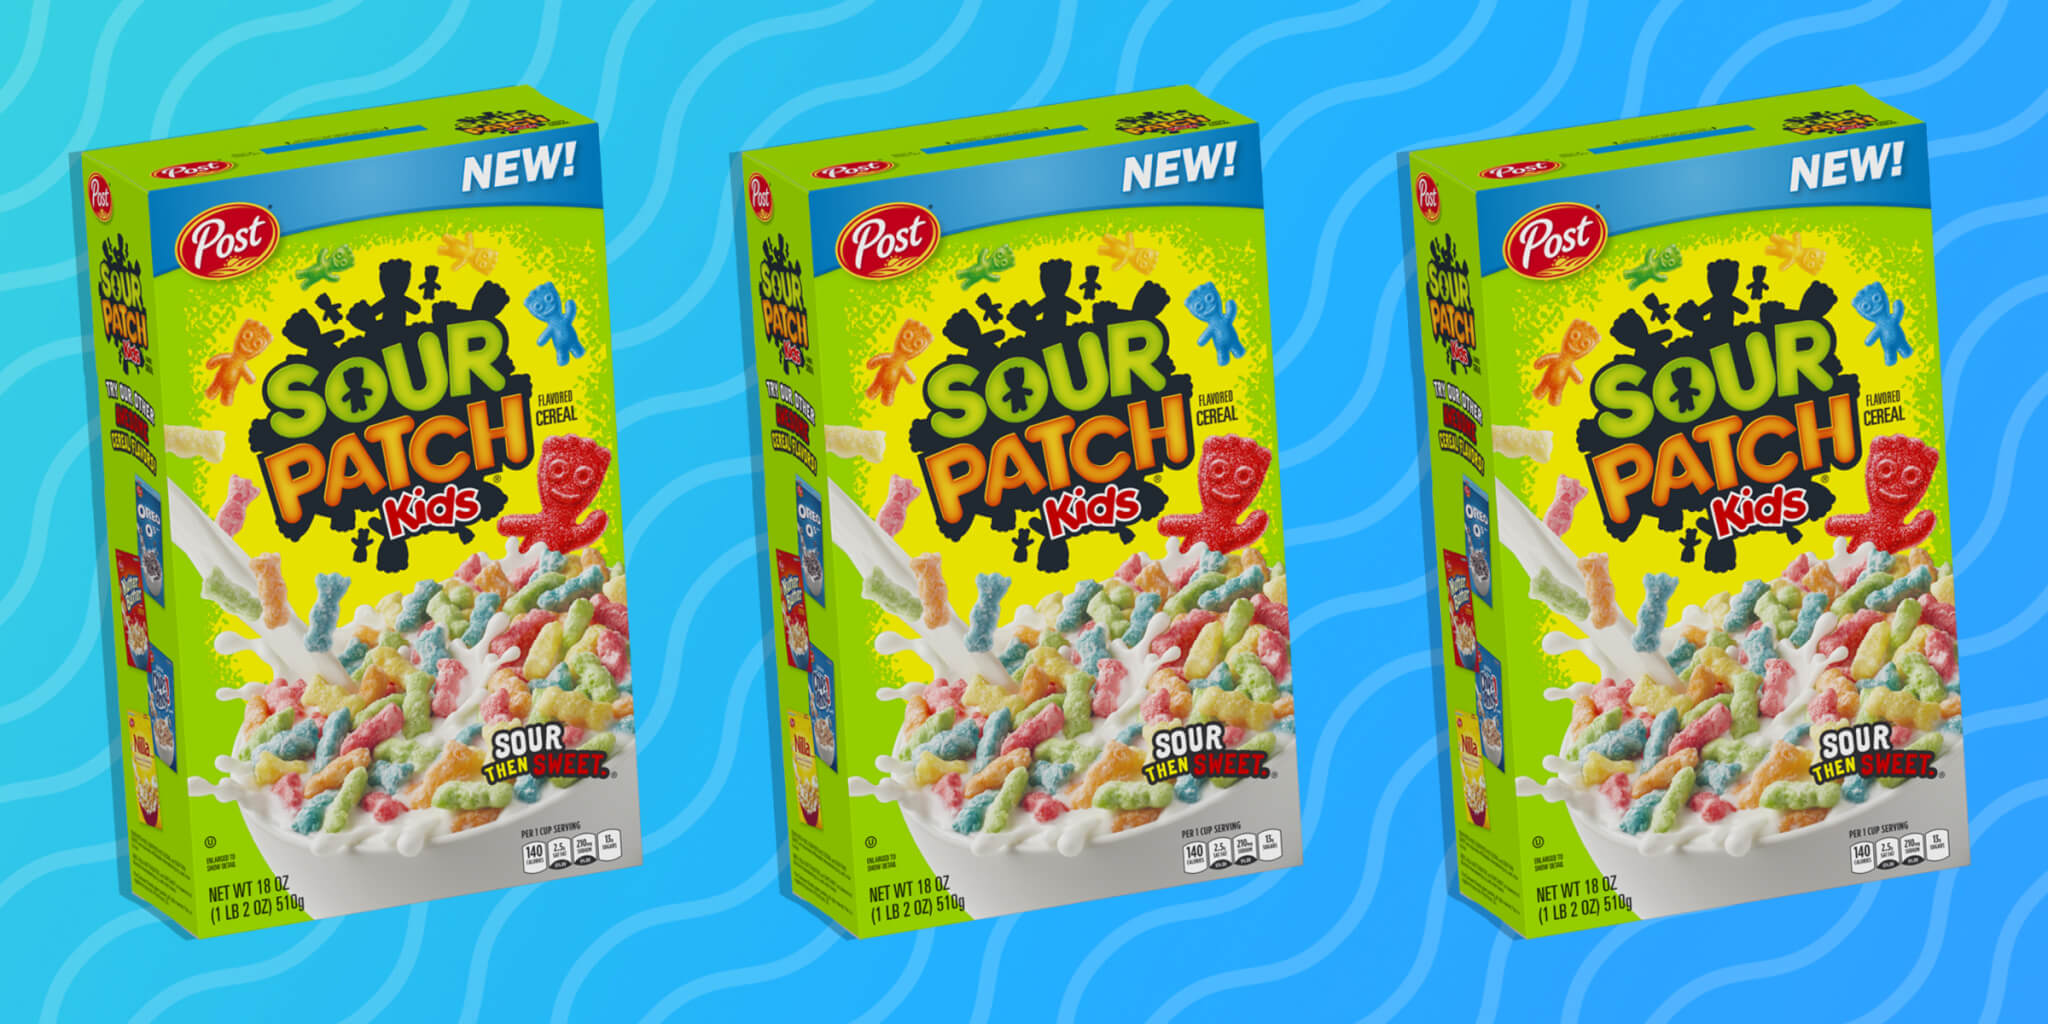 aspecto de la caja de cereal Sour Patch Kids